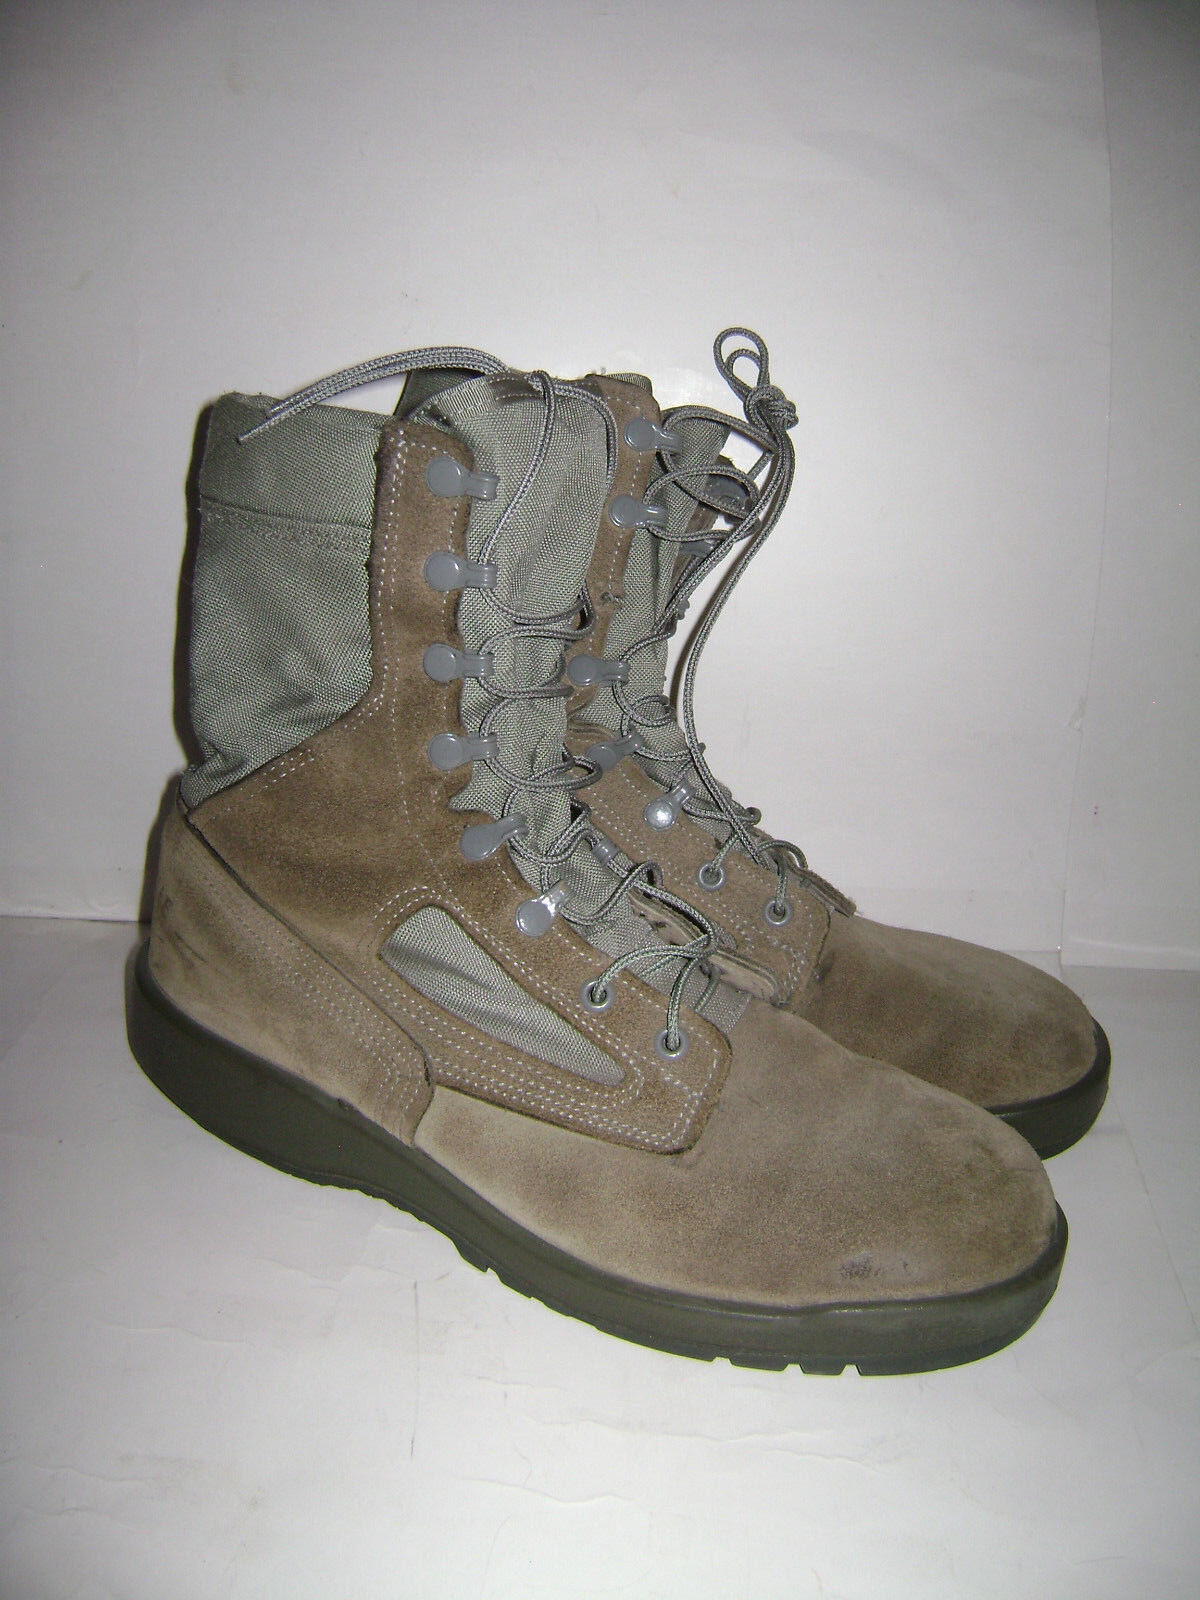 BELLEVILLE MENS BROWN GREEN SUEDE CANVAS STEEL TOE MILITARY JUNGLE BOOTS SZ 9.5